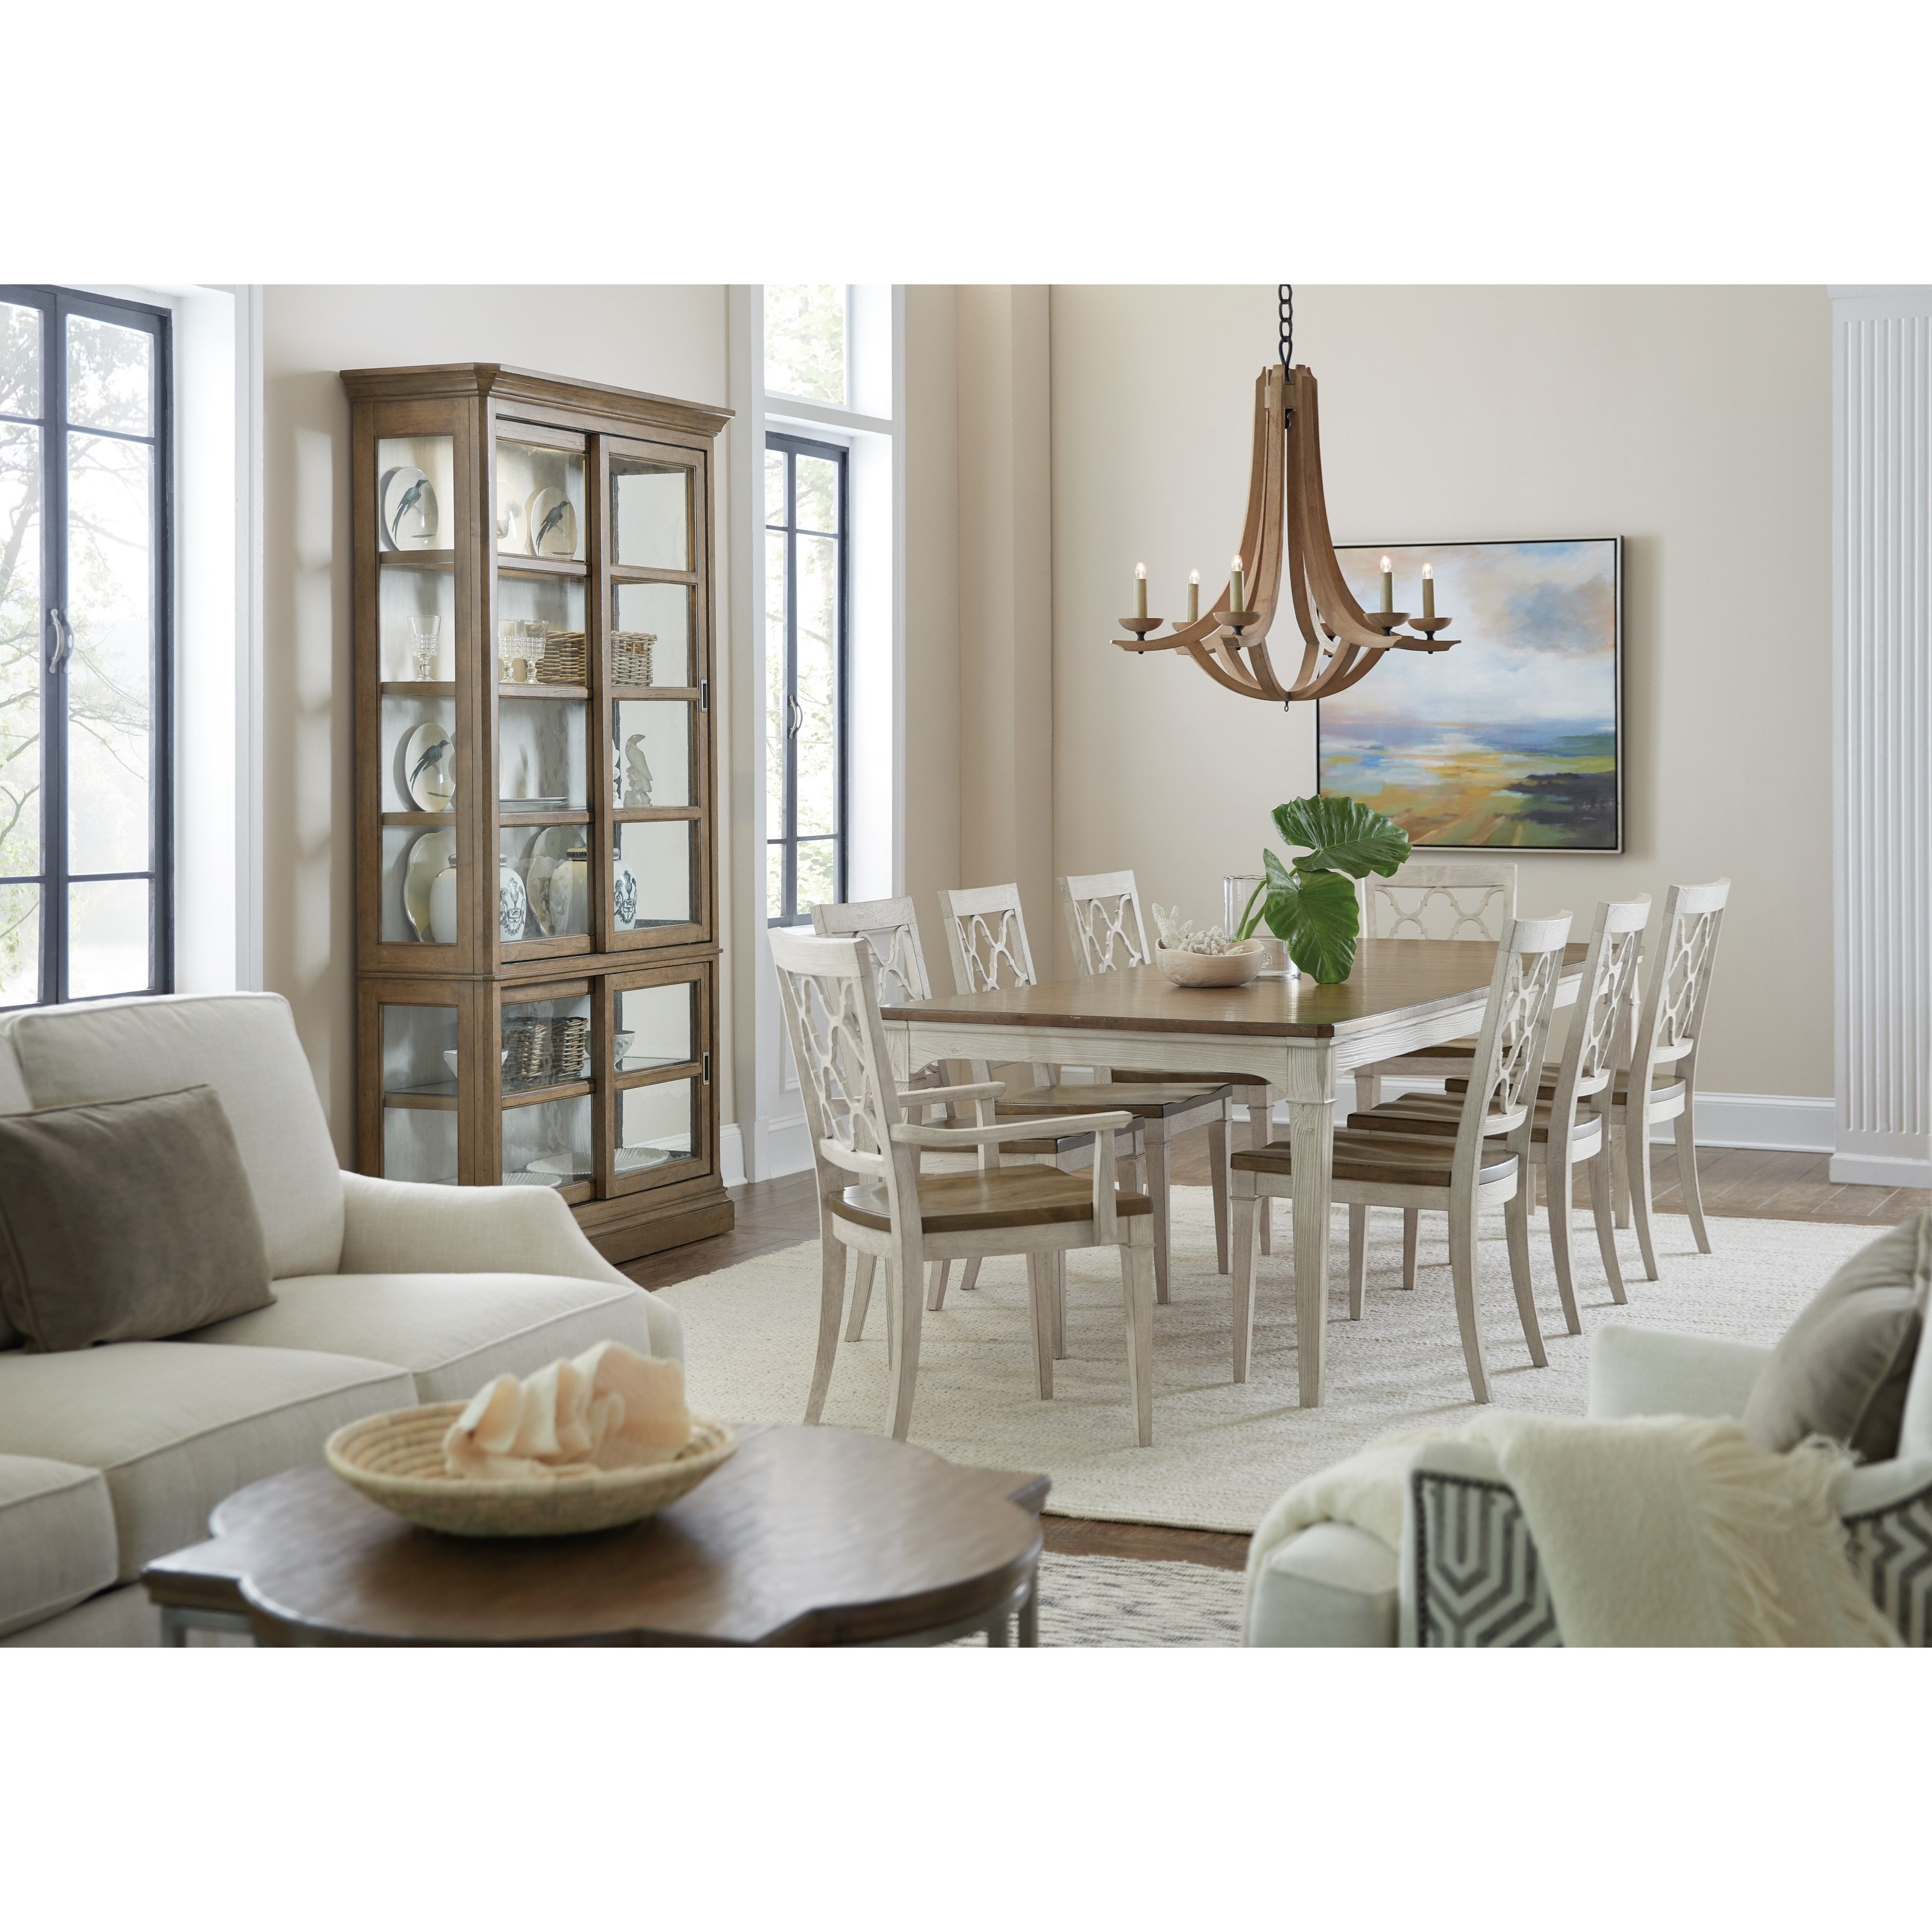 Montebello Formal Dining Room Group by Hooker Furniture at Alison Craig Home Furnishings